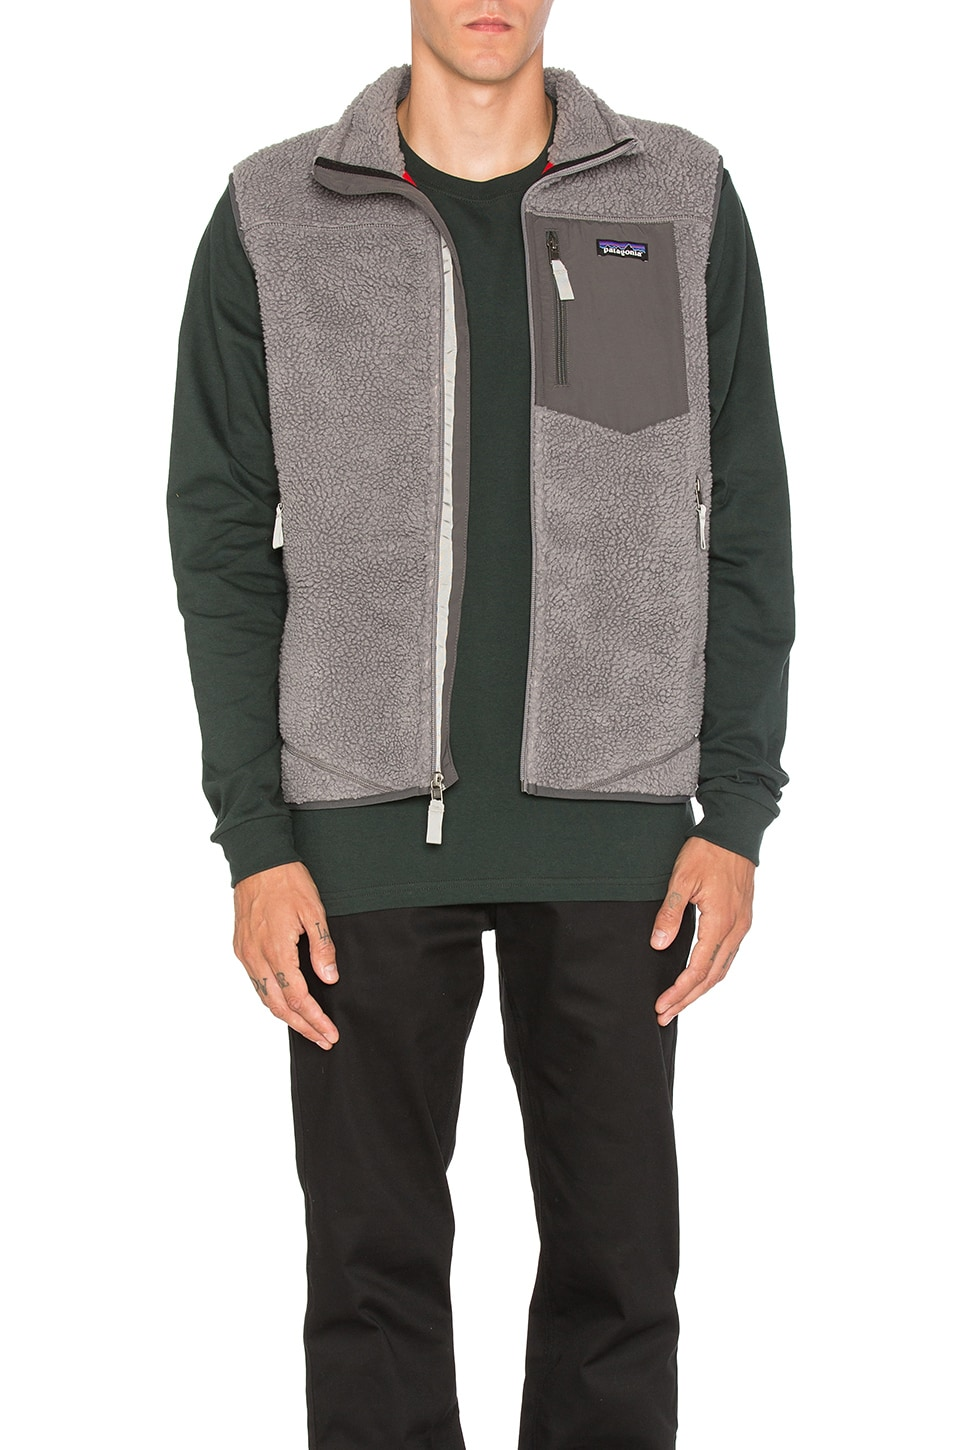 Patagonia Classic Retro-X Vest in Feather Grey | REVOLVE